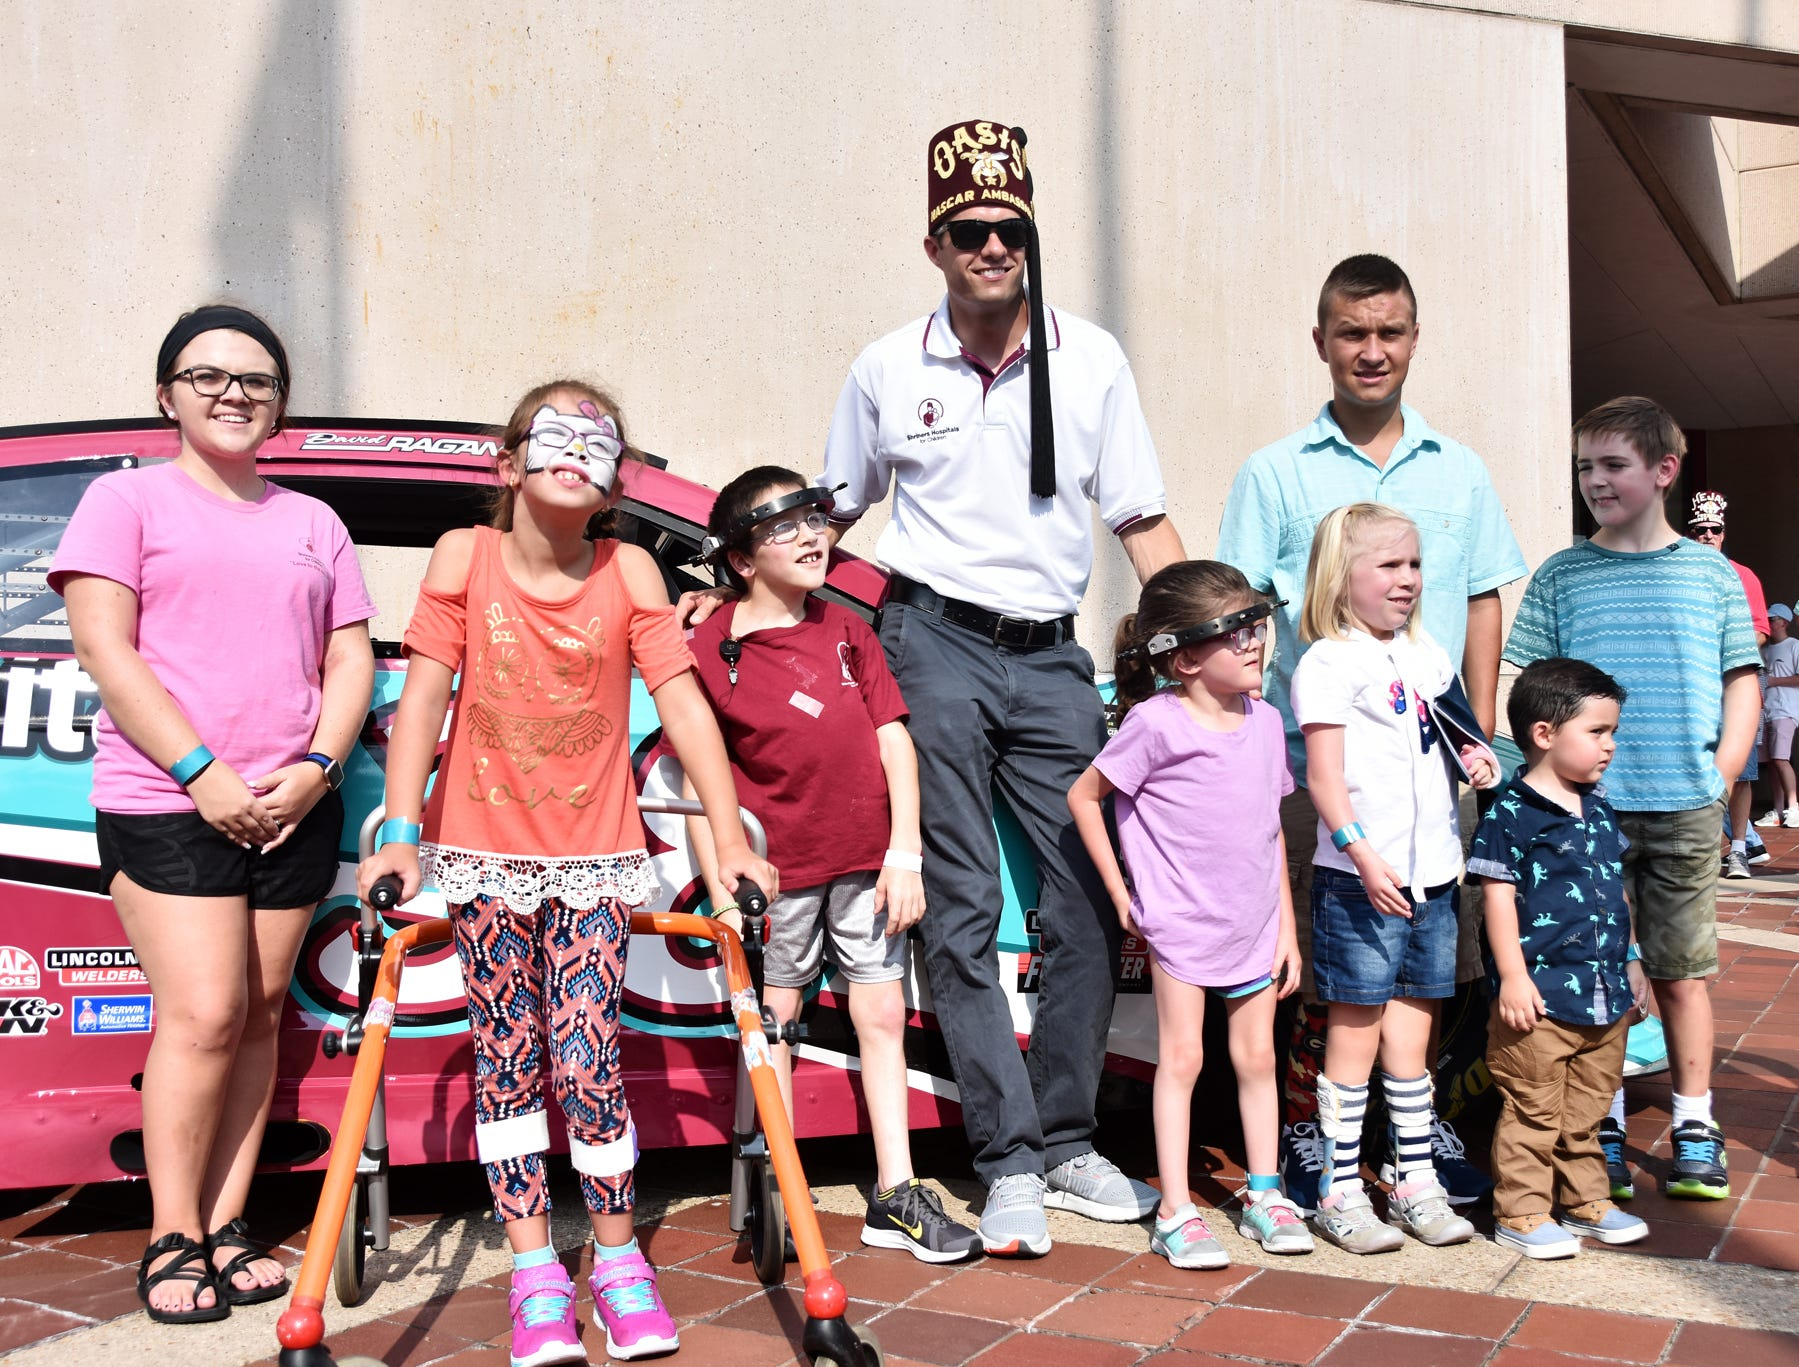 Children pose for a photo with NASCAR Driver David Ragan at the Shriners Hospital for Children in Greenville on August 15, 2018.